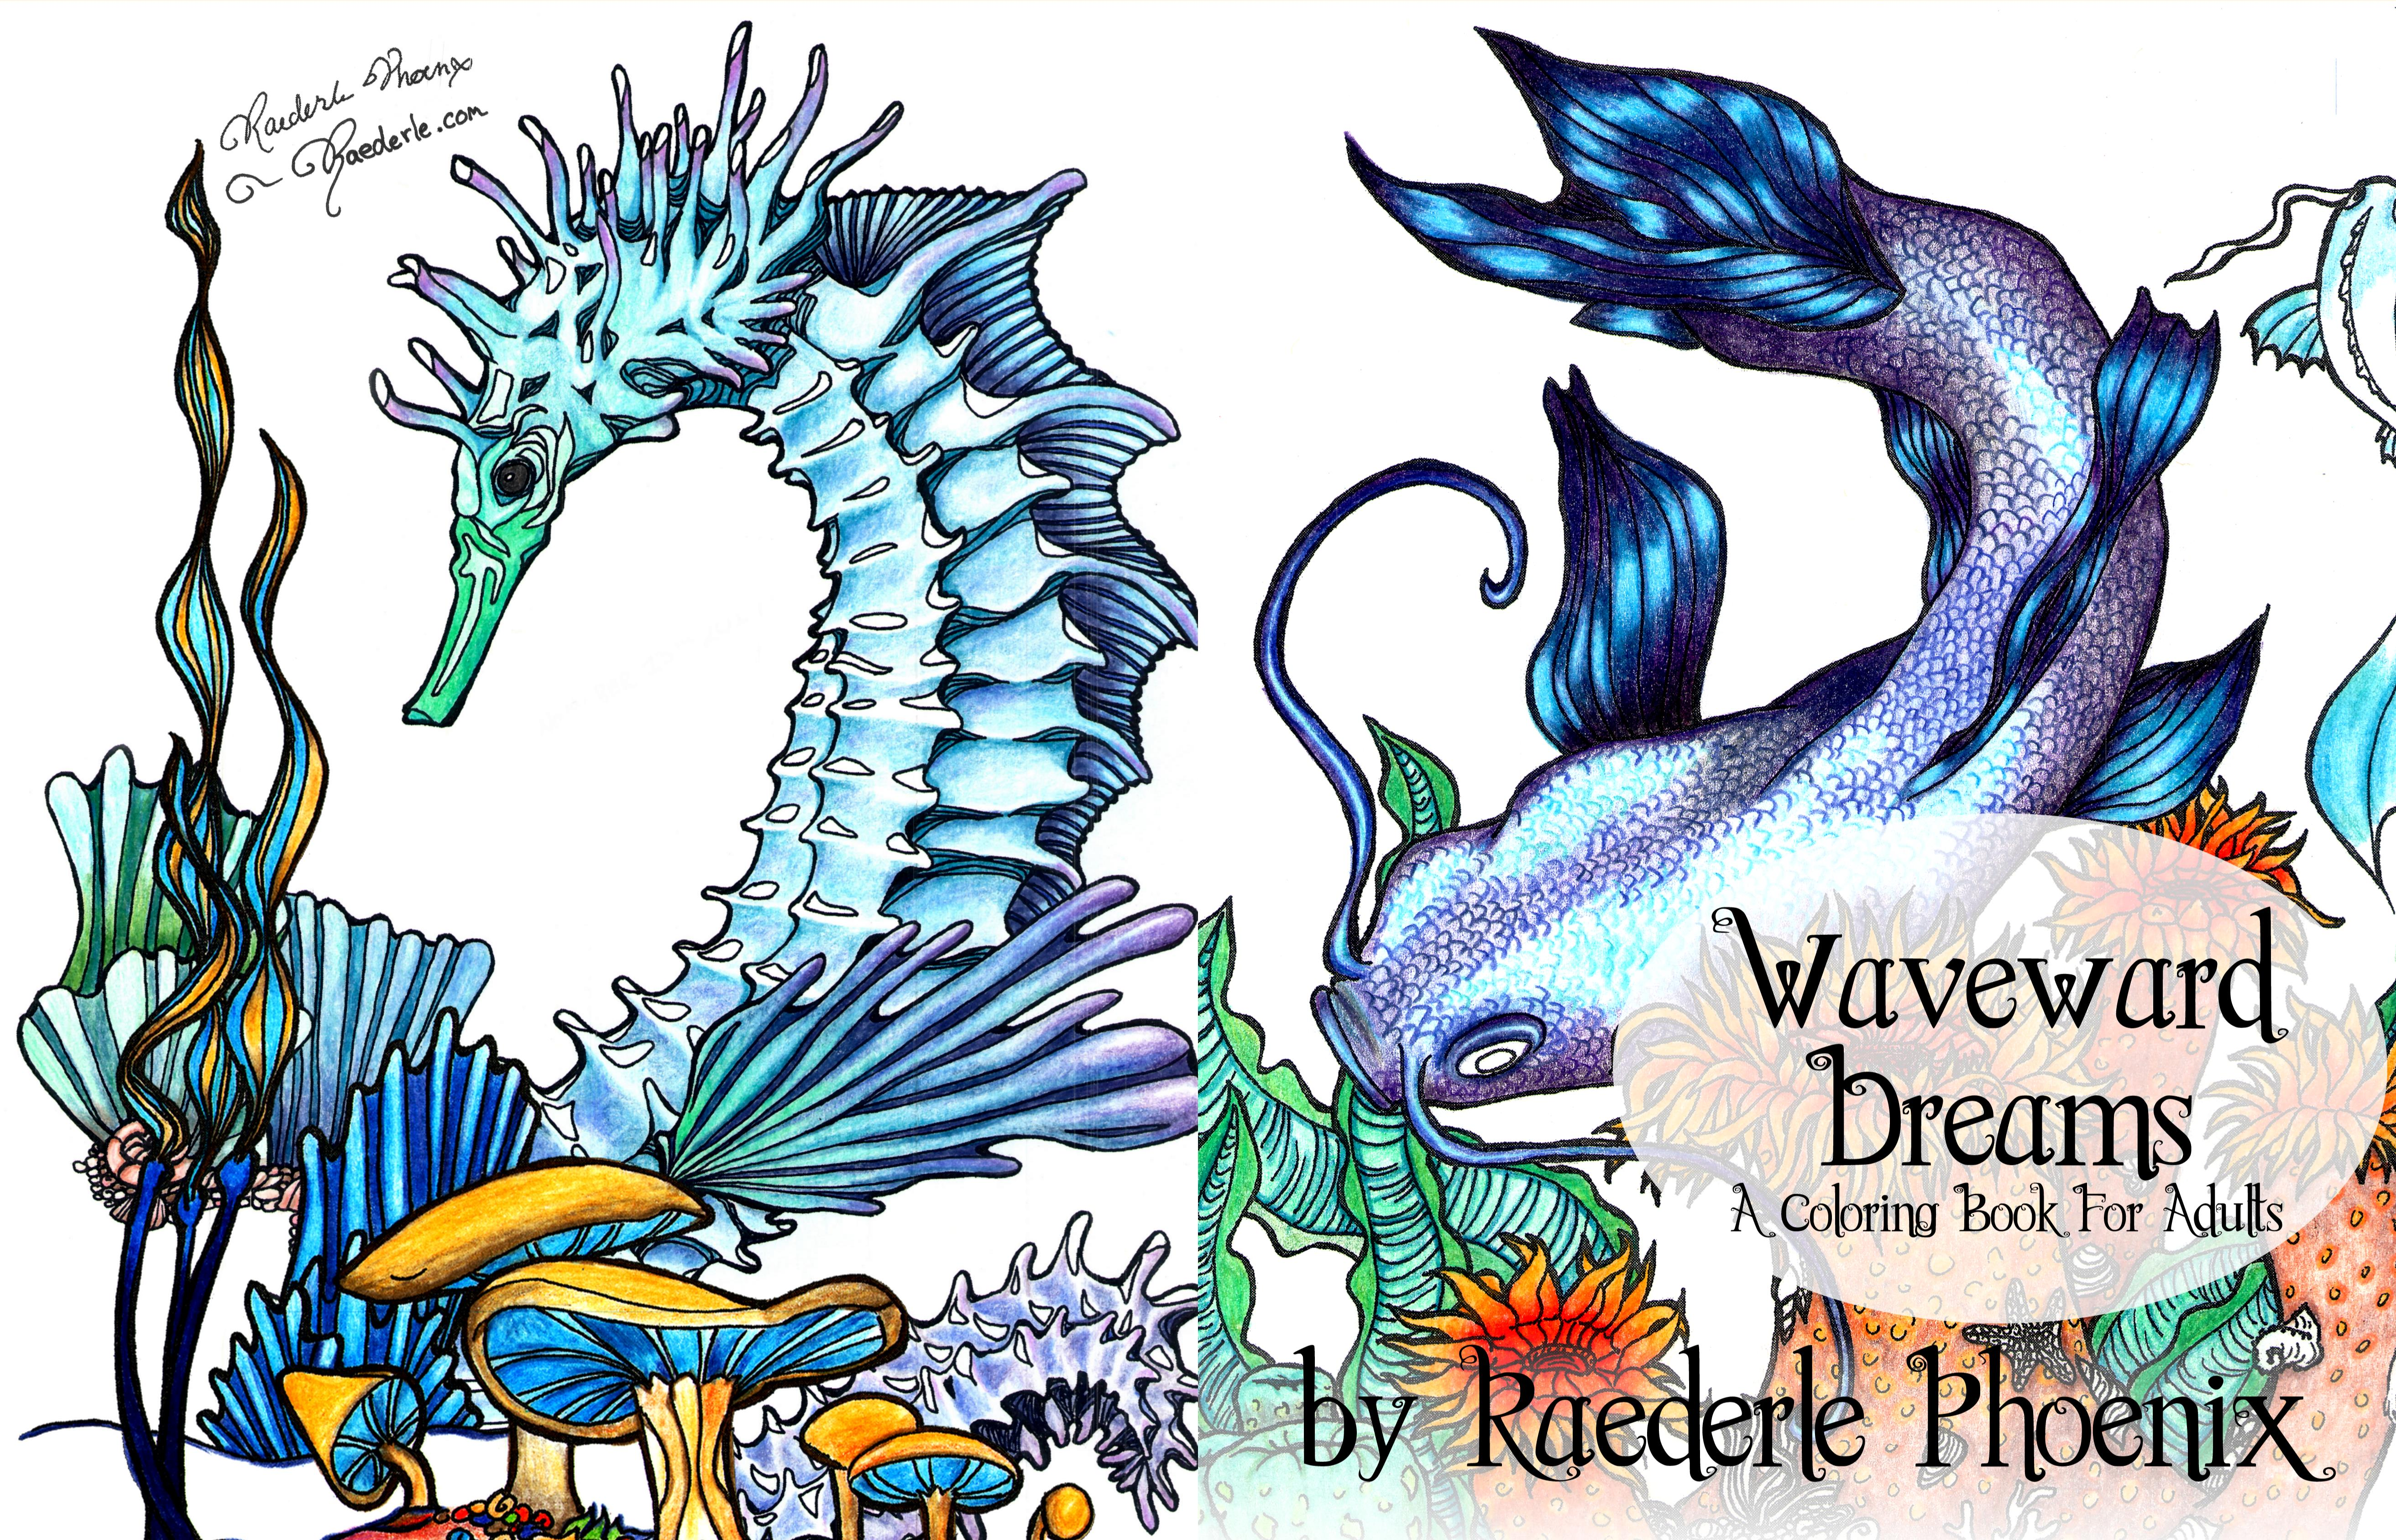 Waveward Dreams Coloring Book for Adults cover image